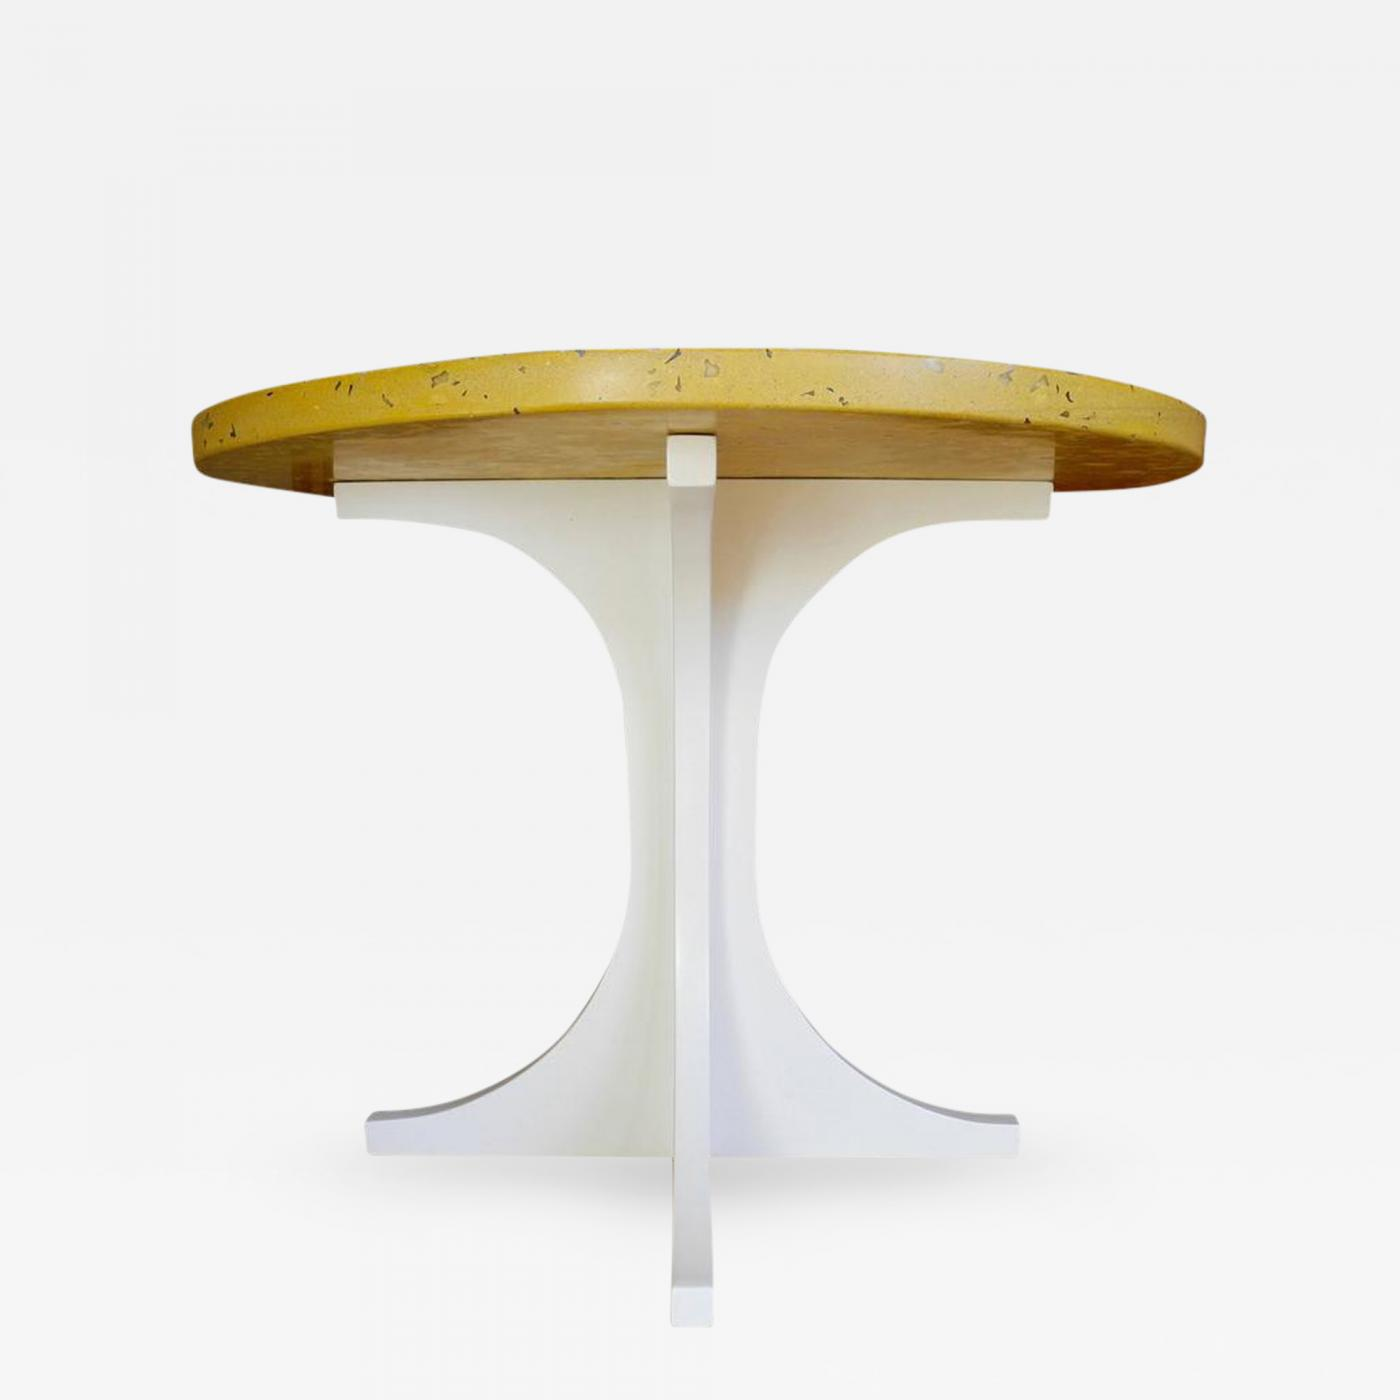 Corinne Robbins Yellow Concrete and Wood Side Table Designed by